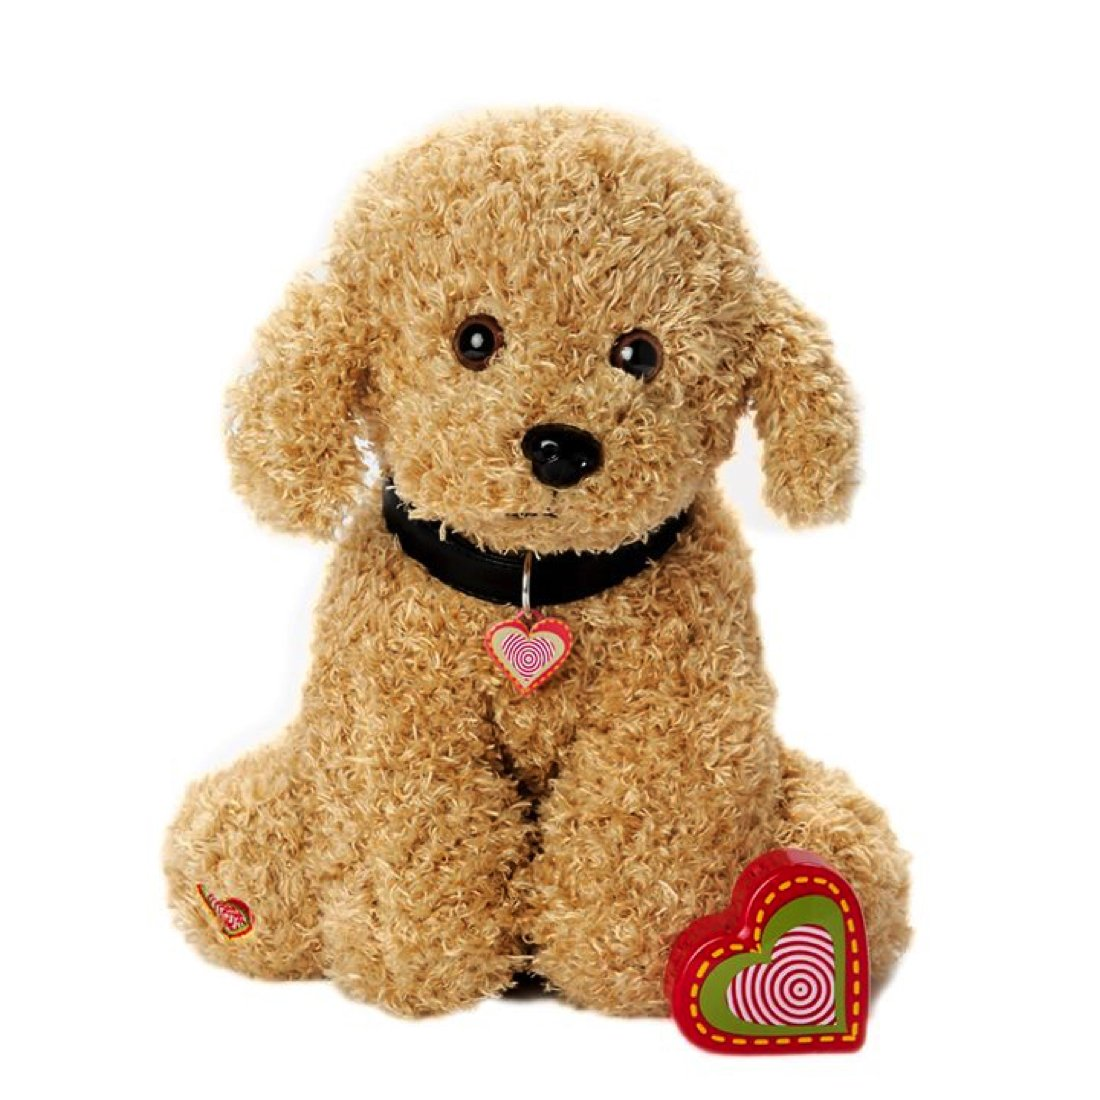 My Baby's Heartbeat Bear - Furbaby's Adorable Stuffed Animal with 20 Second Voice Recordable Heart - Doodle